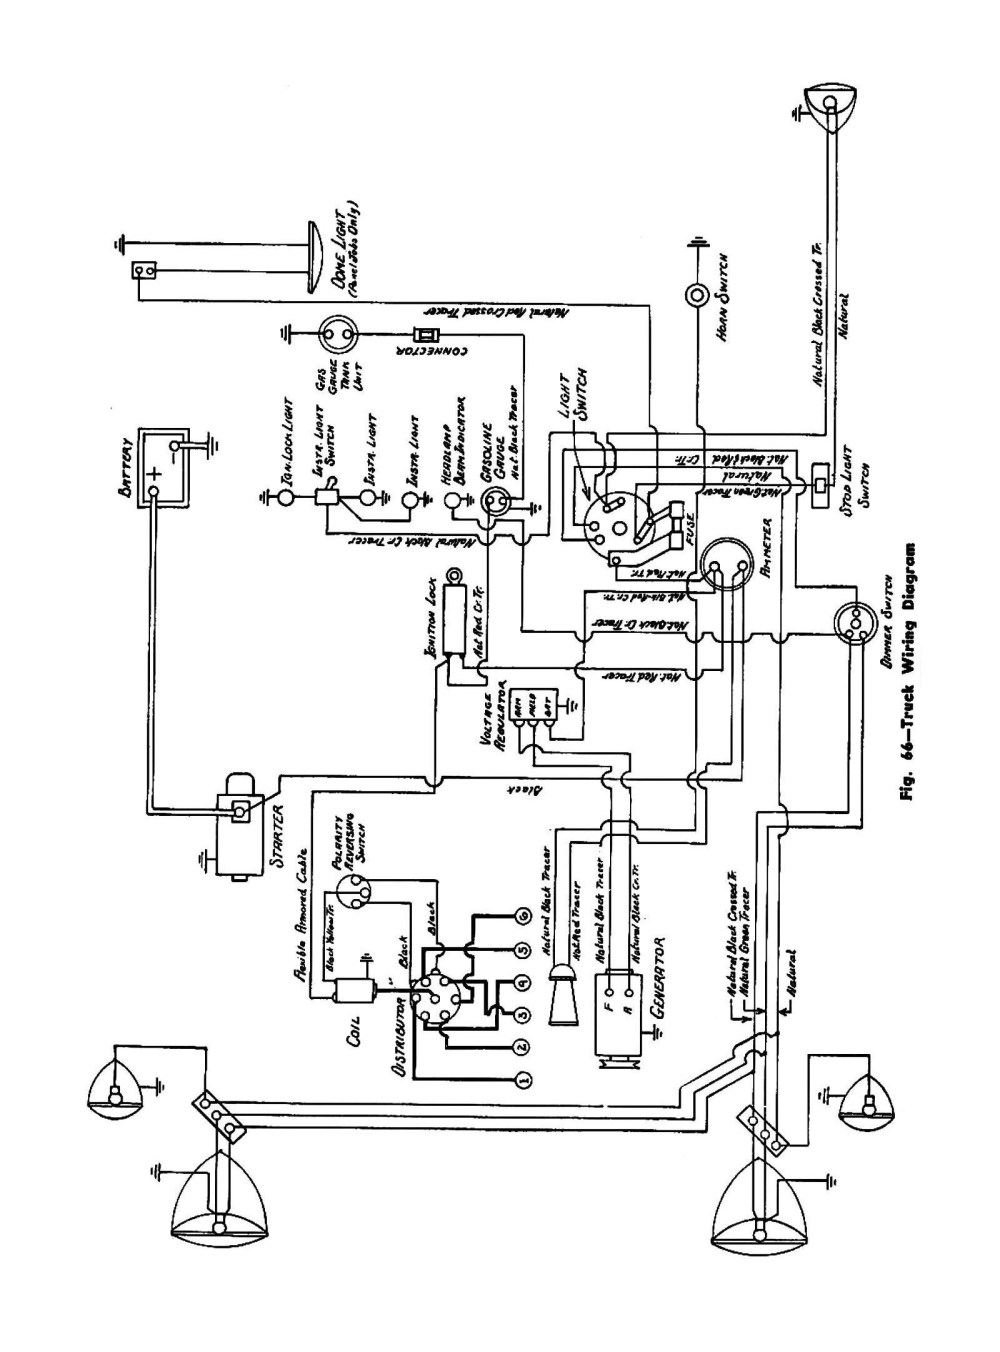 medium resolution of chevrolet wiring harness wiring diagram repair guides gm wiring diagrams free download 1955 chevrolet wiring harness